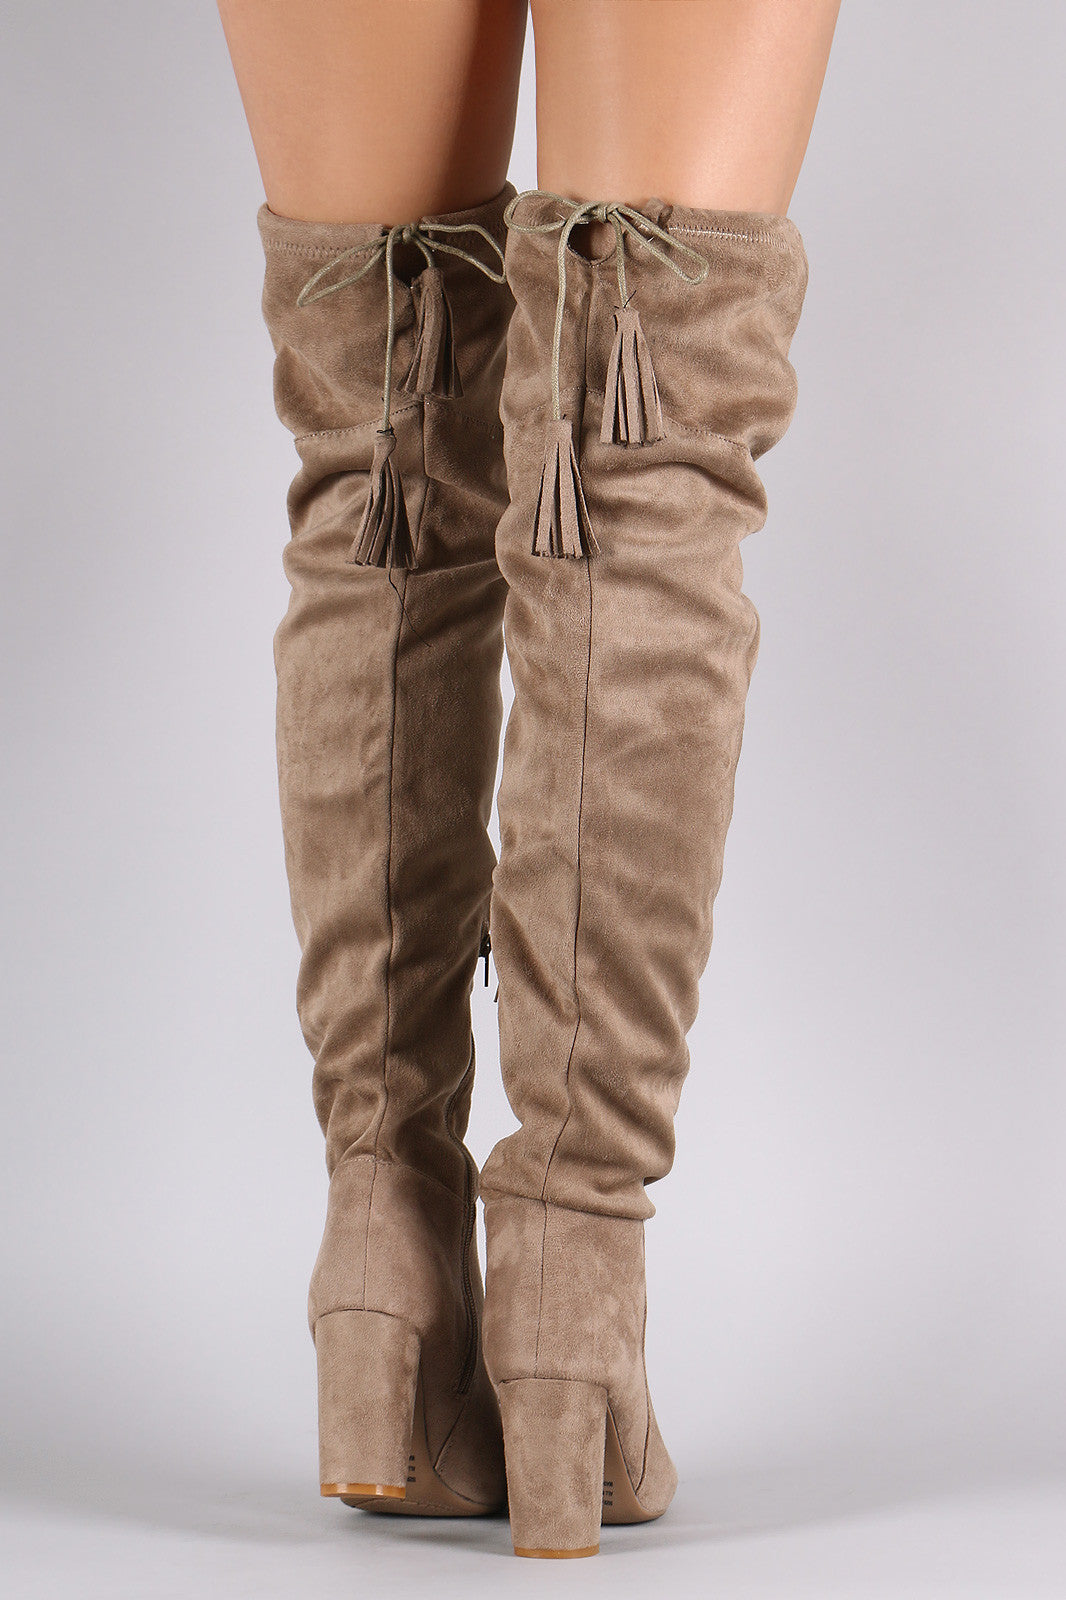 Suede Tassel Drawstring Chunky Heeled Over-The-Knee Boots - Thick 'N' Curvy Shop - 3